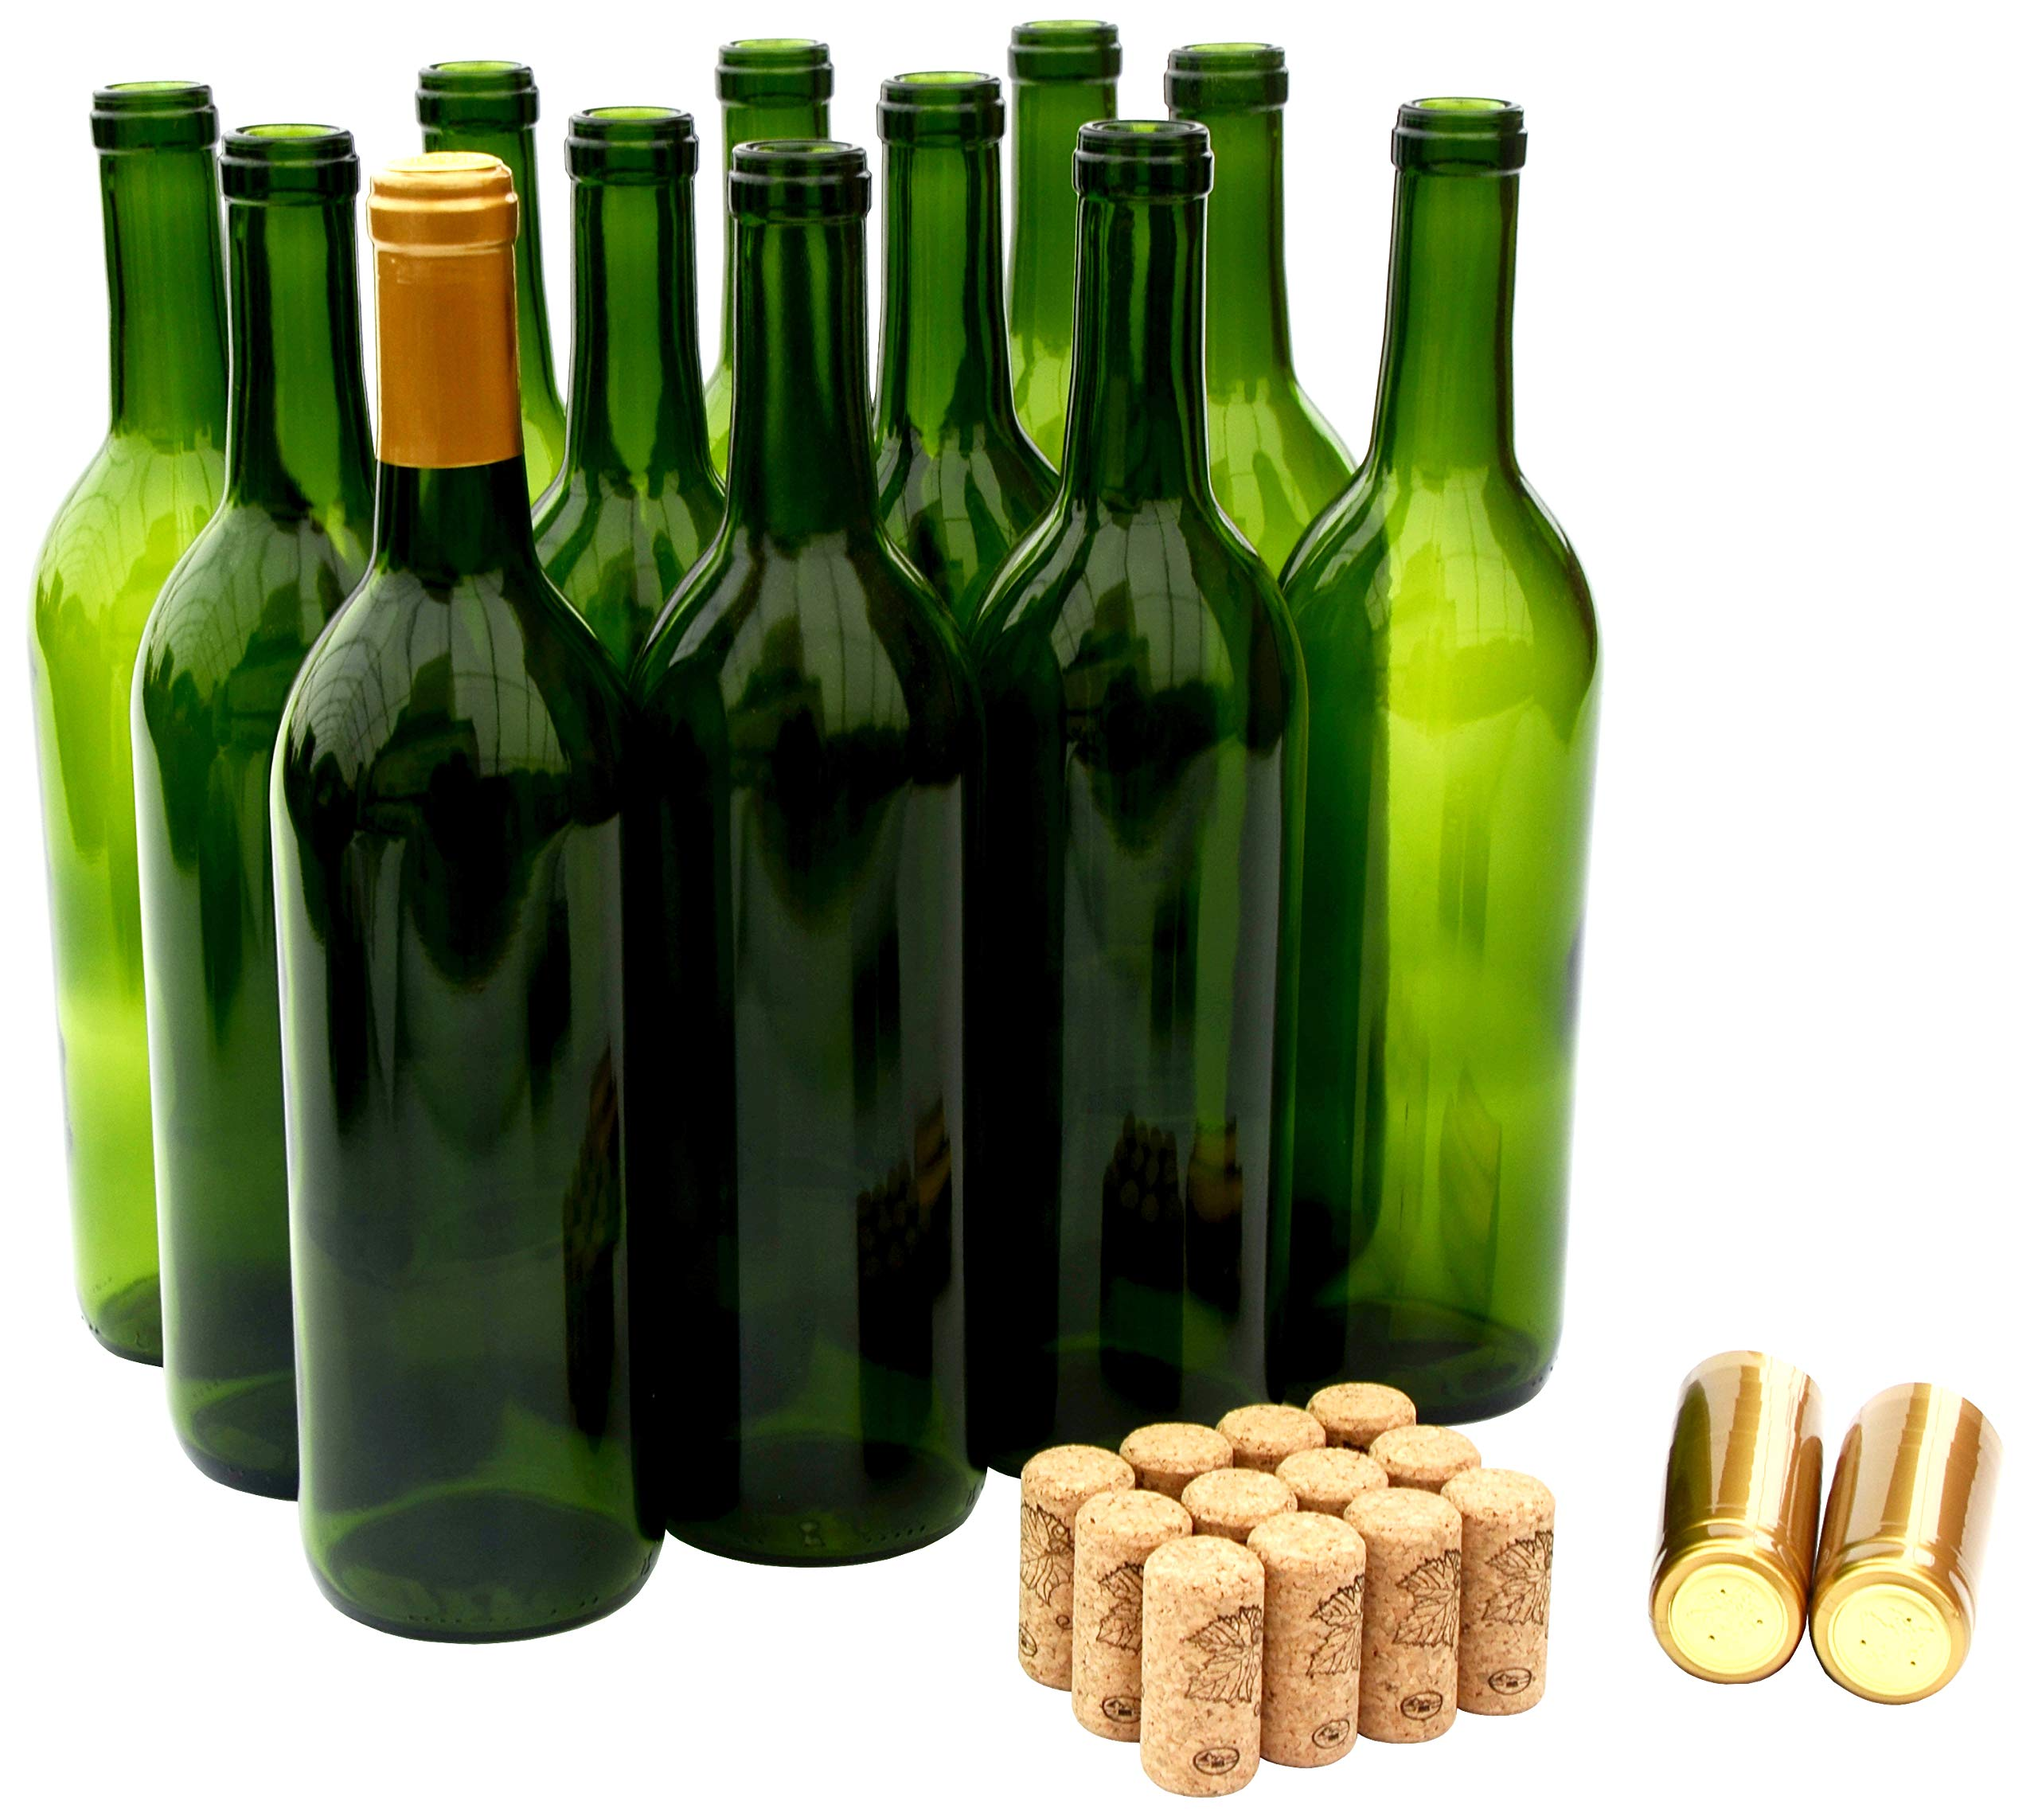 North Mountain Supply 750ml Champagne Green Glass Bordeaux Wine Bottle Flat-Bottomed Cork Finish - with #8 Premium Natural Corks & Gold PVC Shrink Capsules - Case of 12